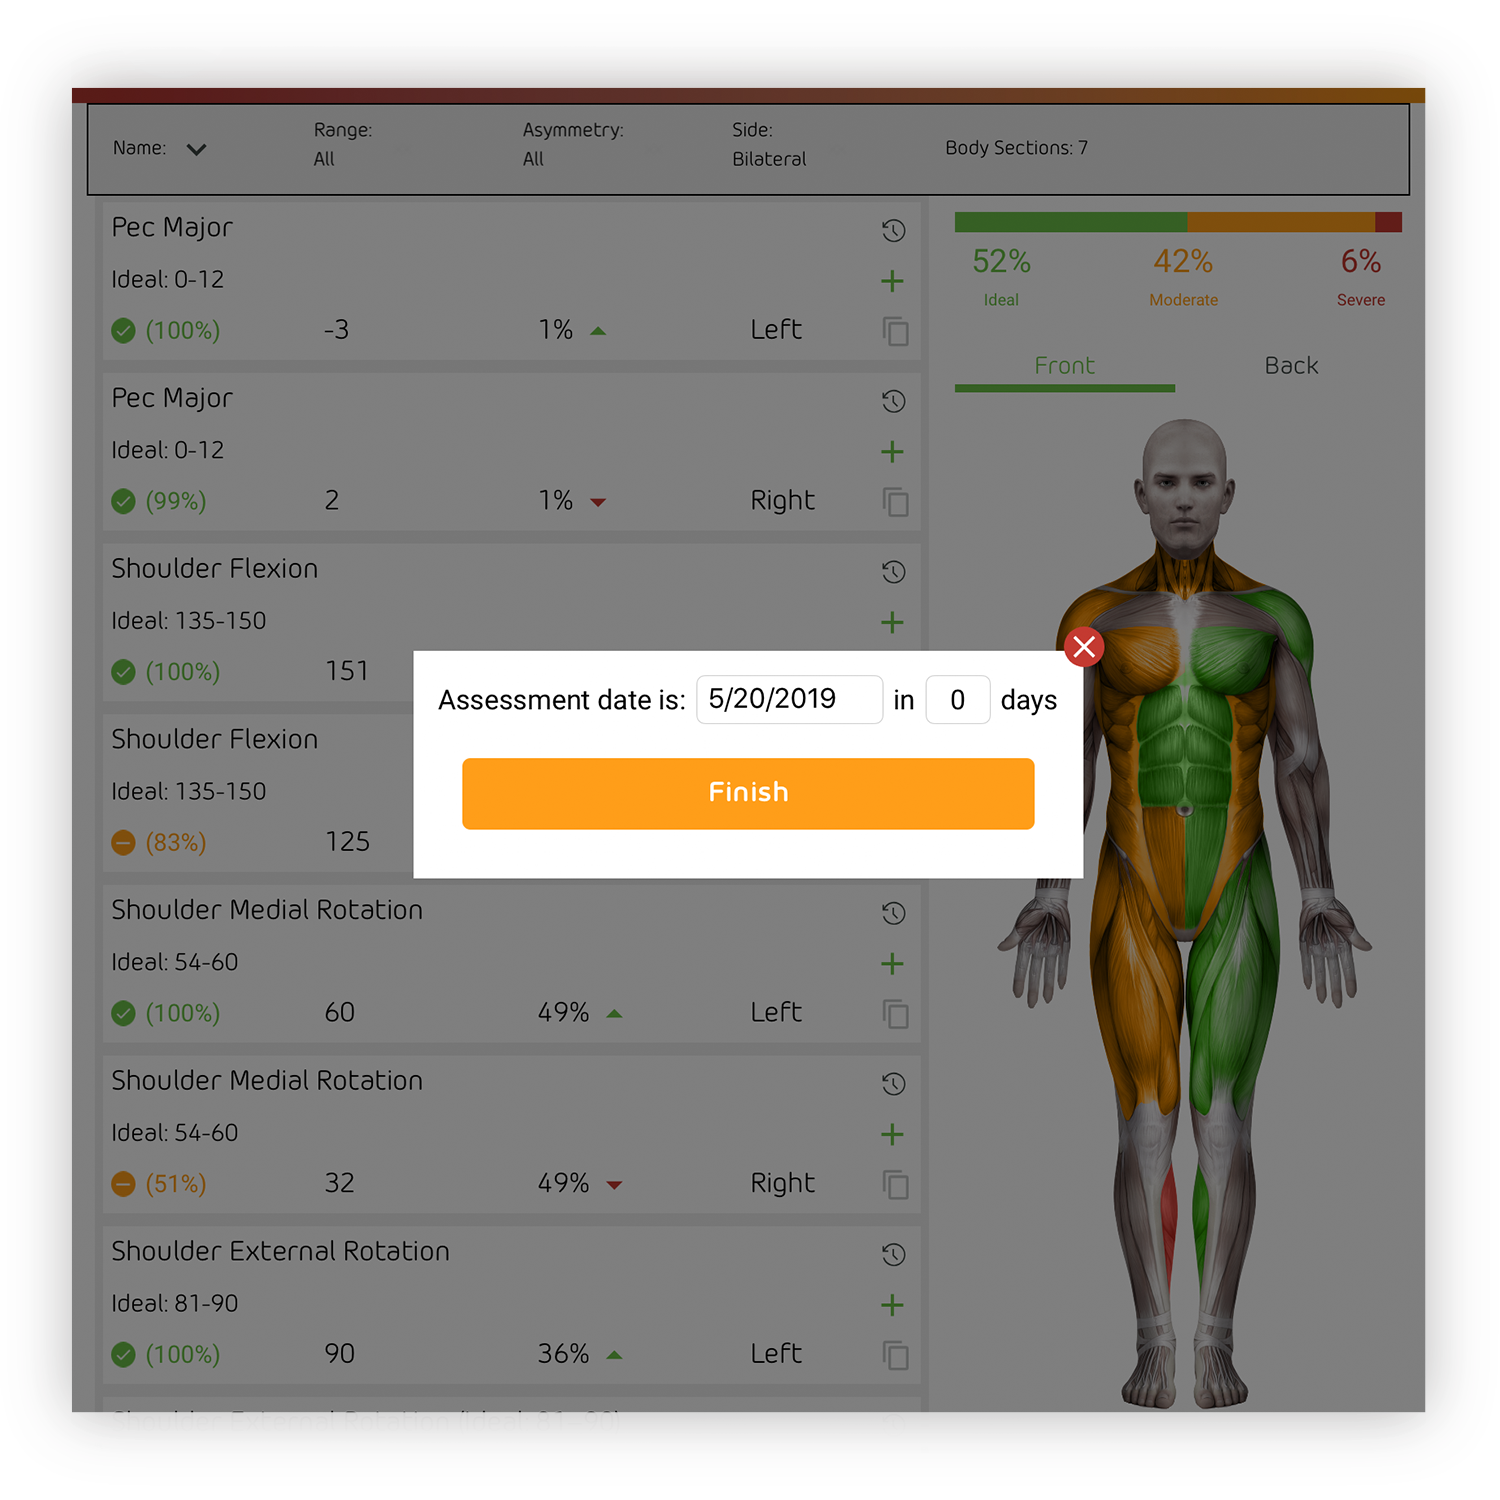 Re-Assessments - A re-assessment date is scheduled to monitor for changes in the Severe, Moderate, or Asymmetrical measurements addressed in the Custom Flexibility and Mobility Program. The Custom Flexibility and Mobility Program is updated accordingly.